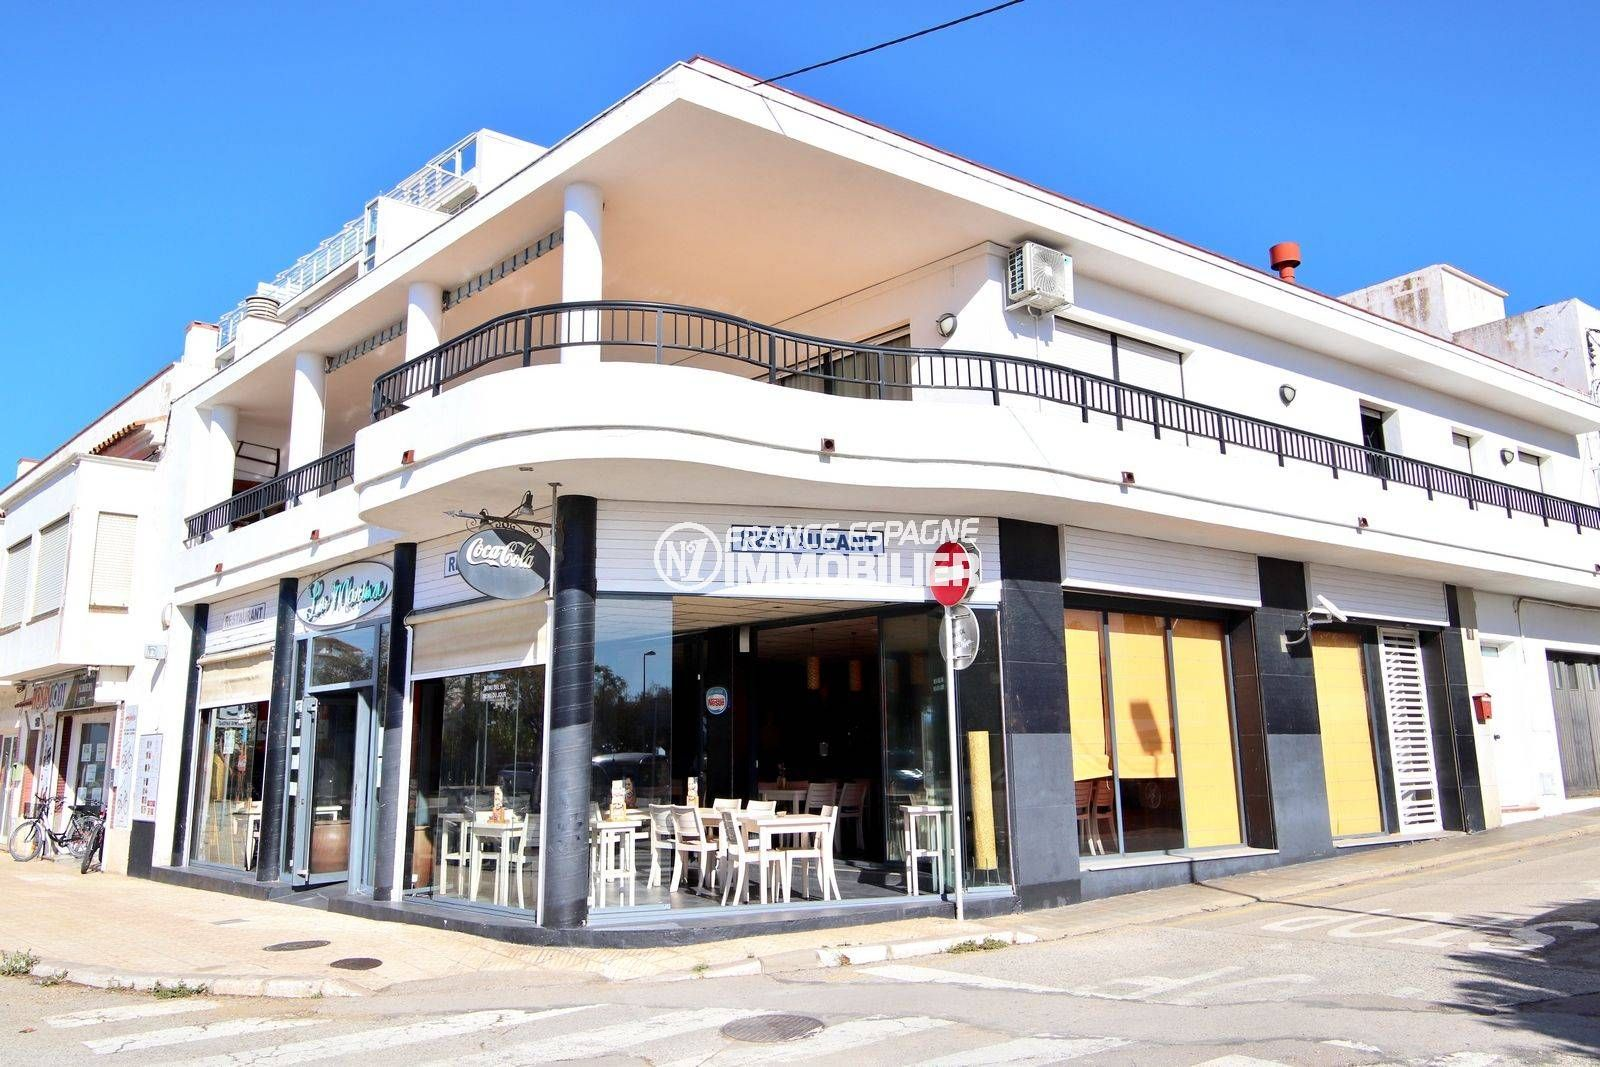 agence immo center: bar estaurant ref.3816, en face du port de roses